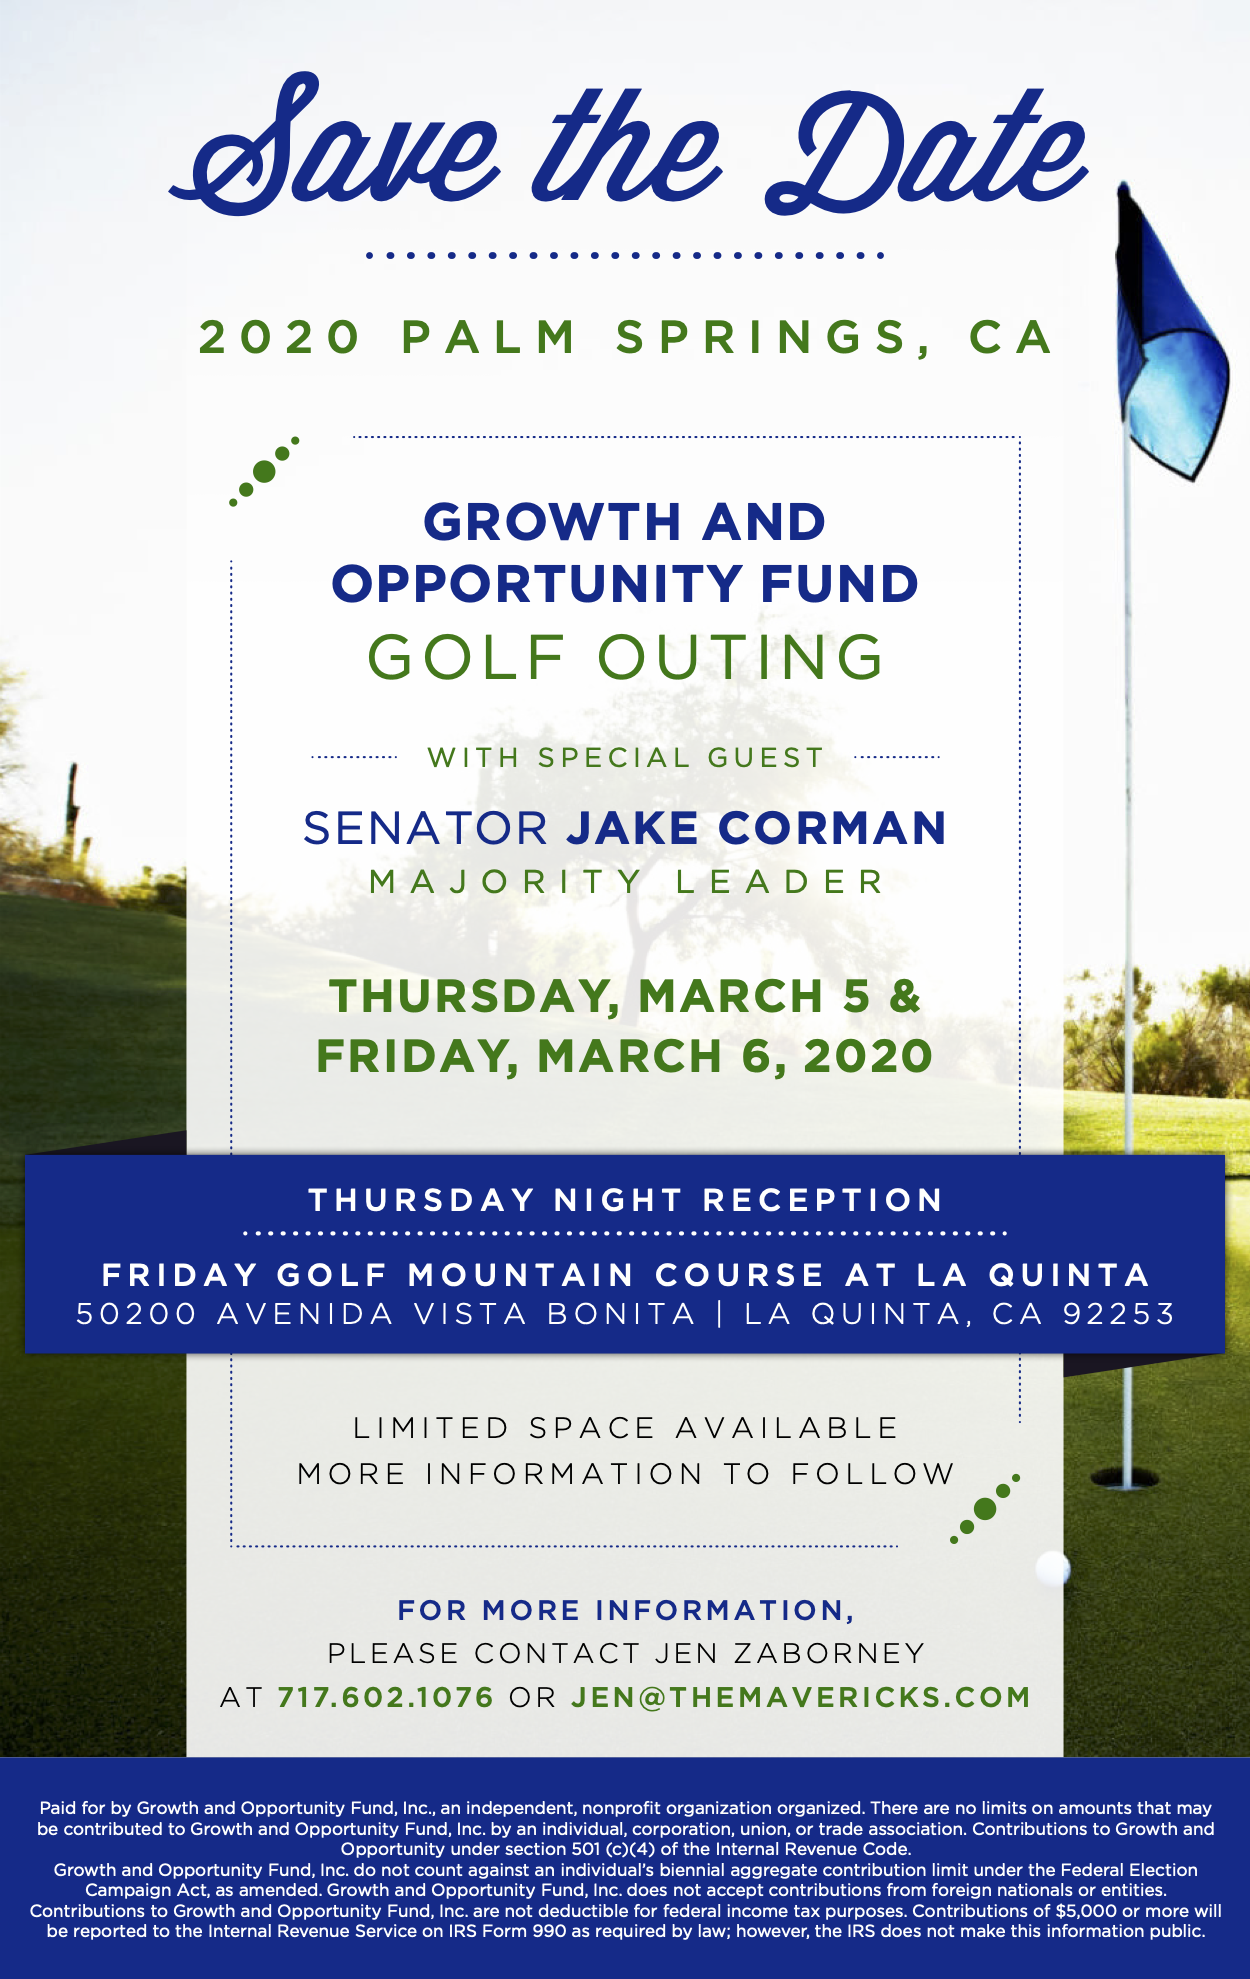 Invitation to a Growth and Opportunity Fund fundraising event